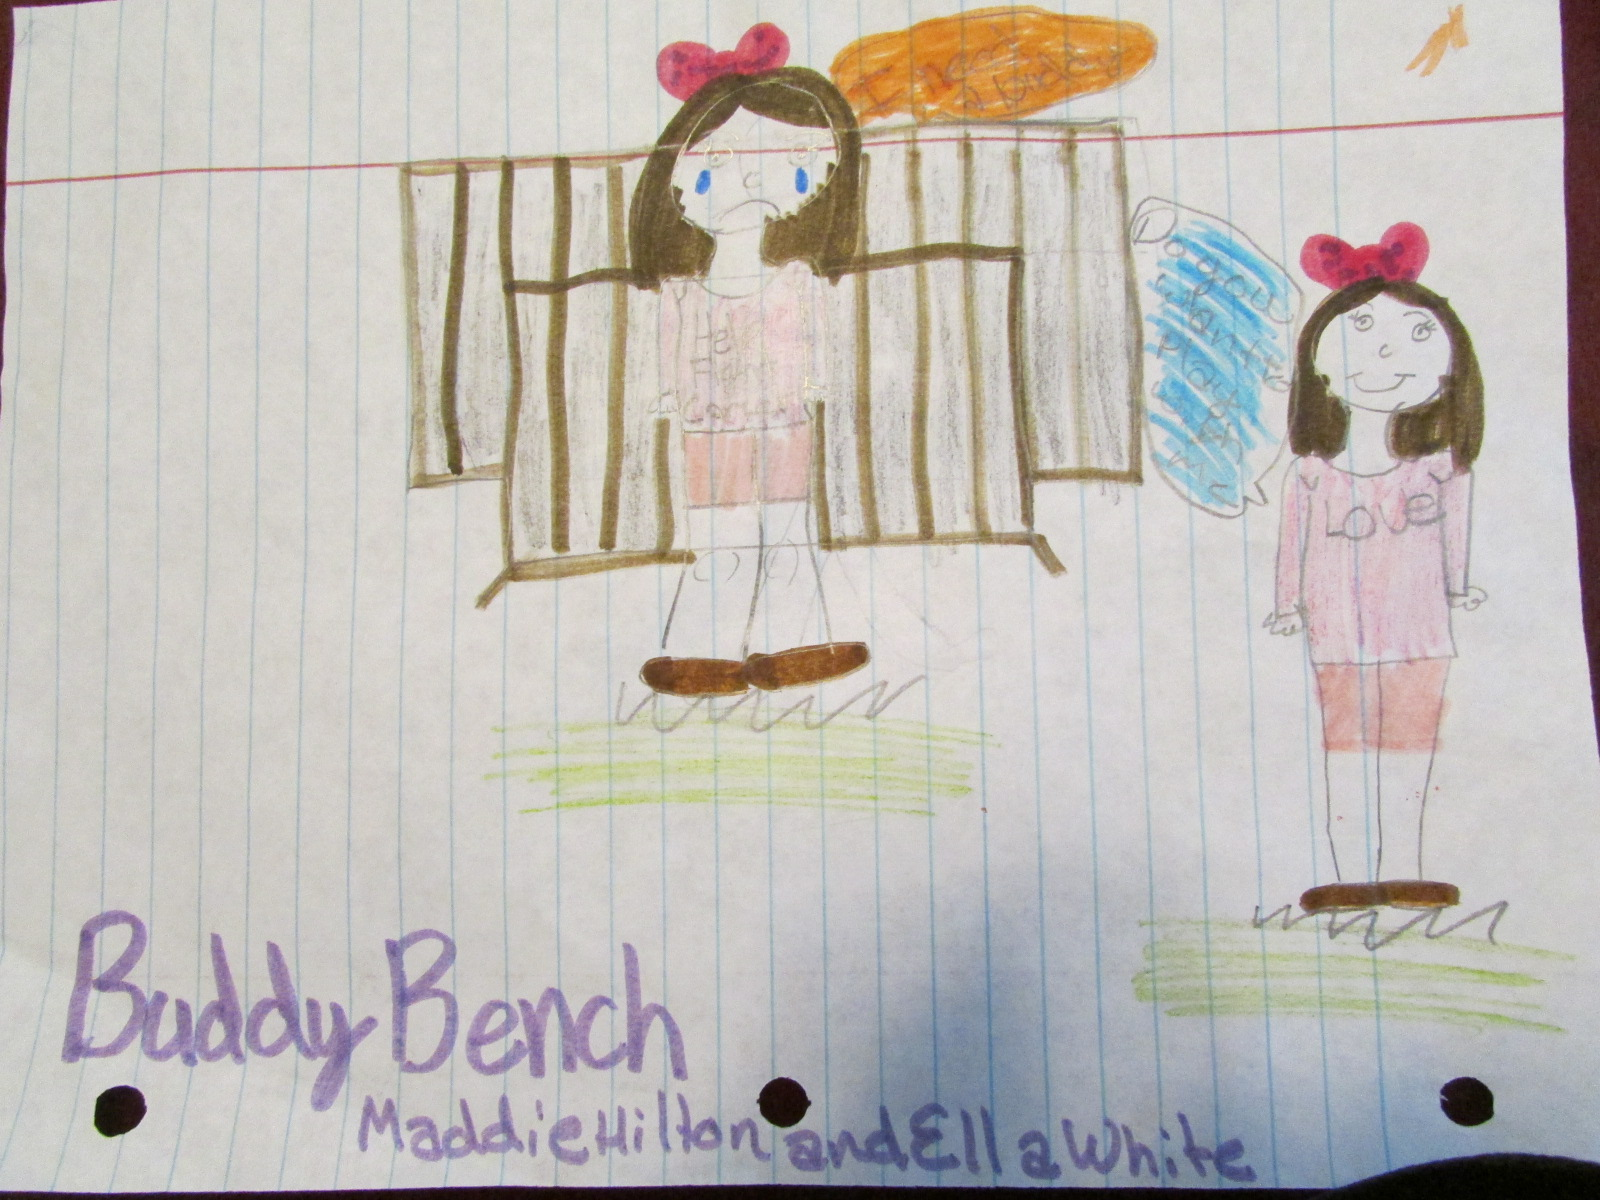 Spout Springs Buddy Bench drawing 10-15